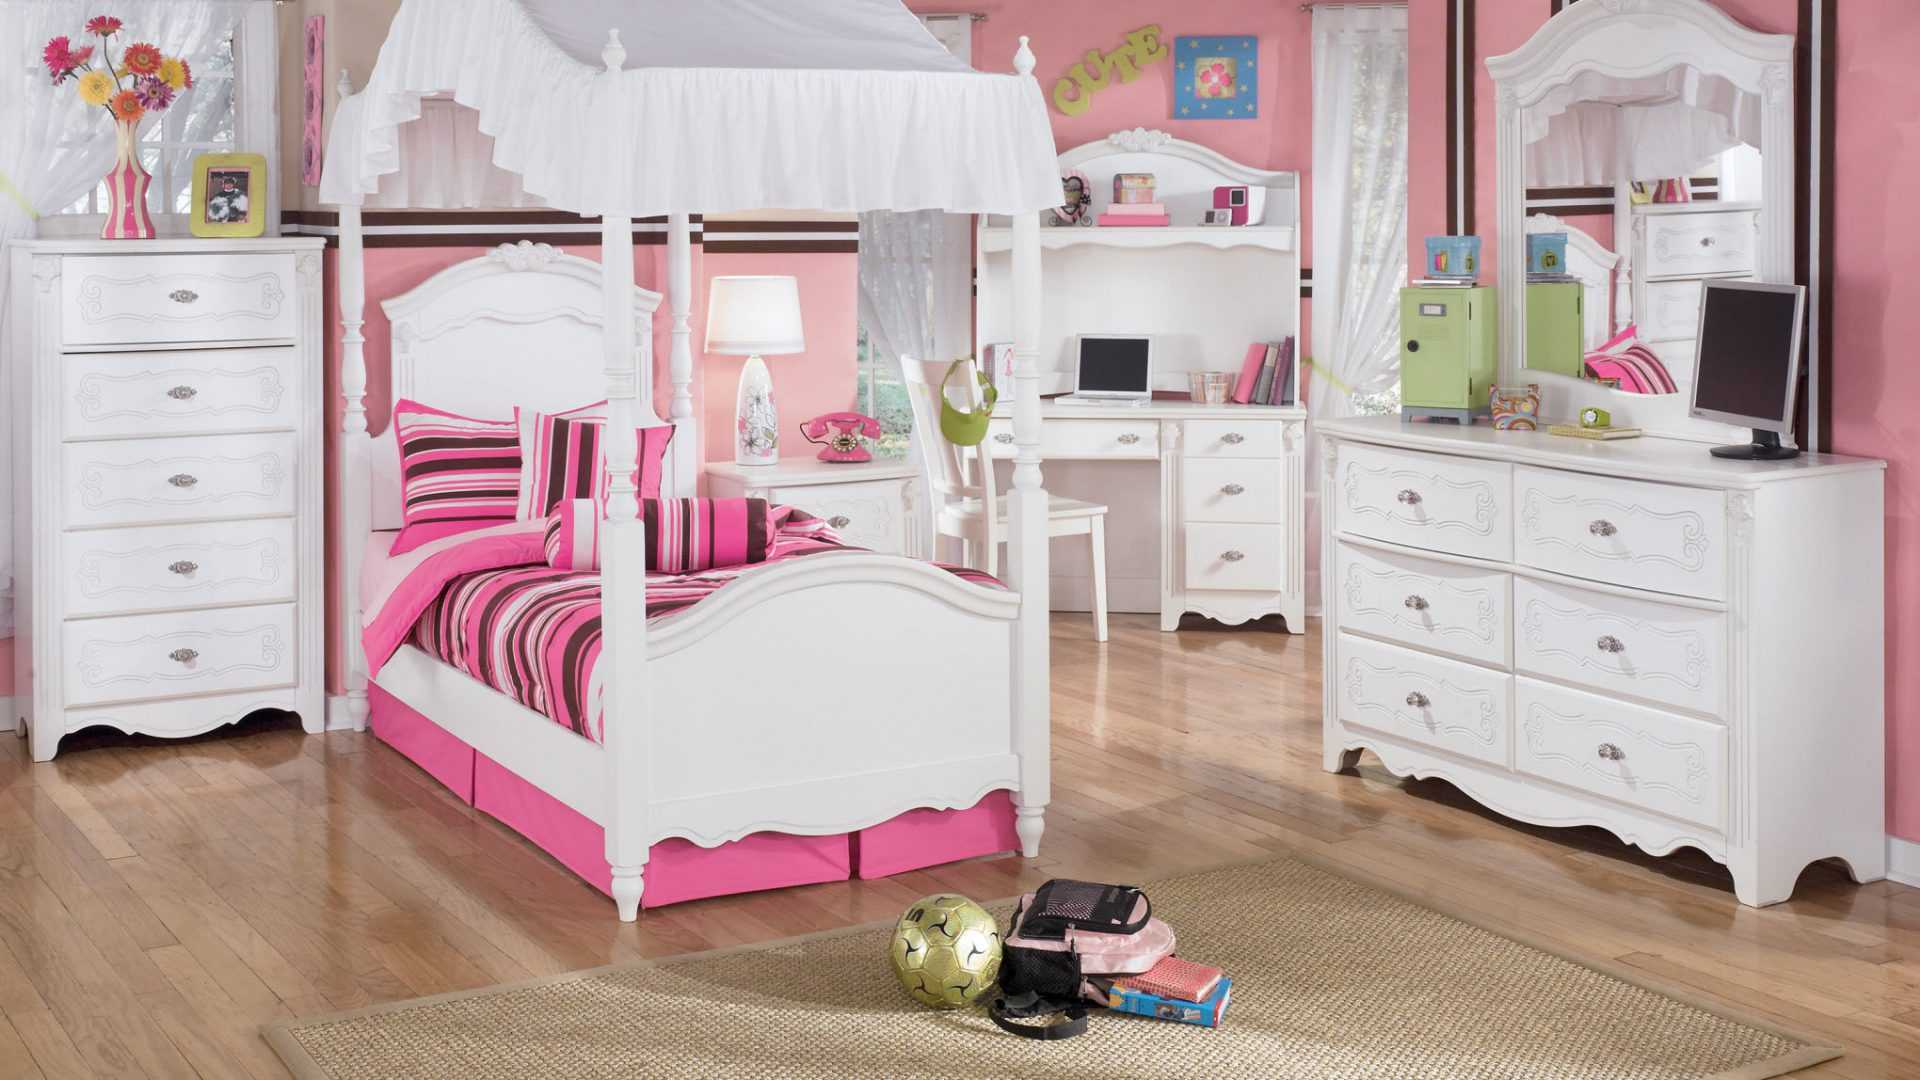 Children Bedroom Sets children bedroom sets cheap images attractive set models shocking ideas  toddler and EQRENFW